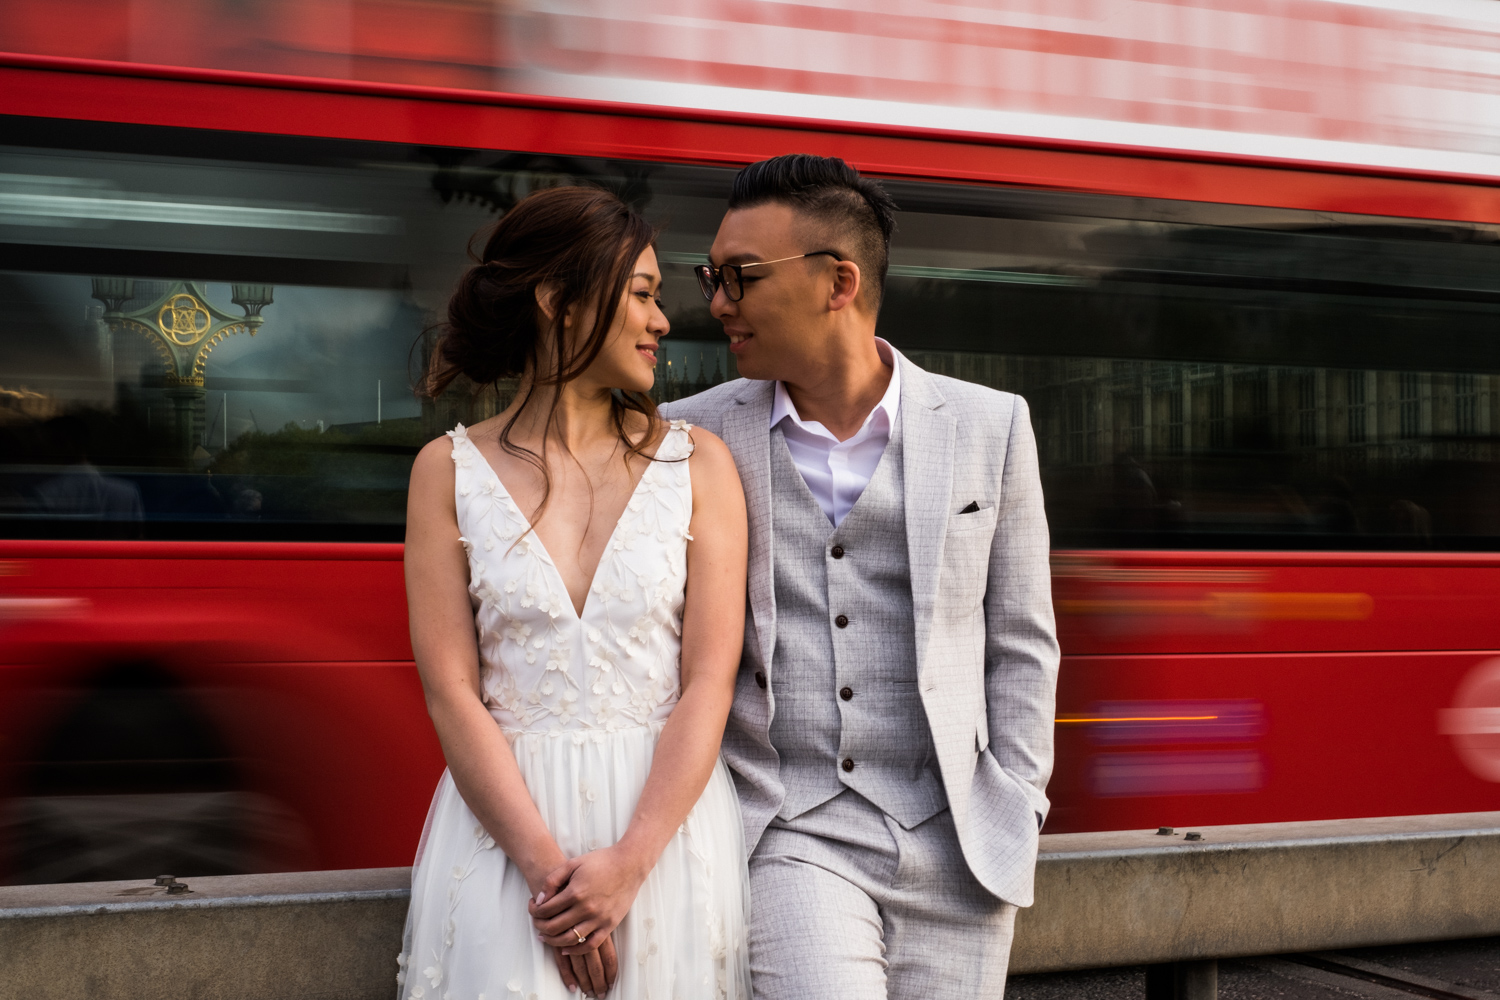 London pre-wedding photos - Red Bus